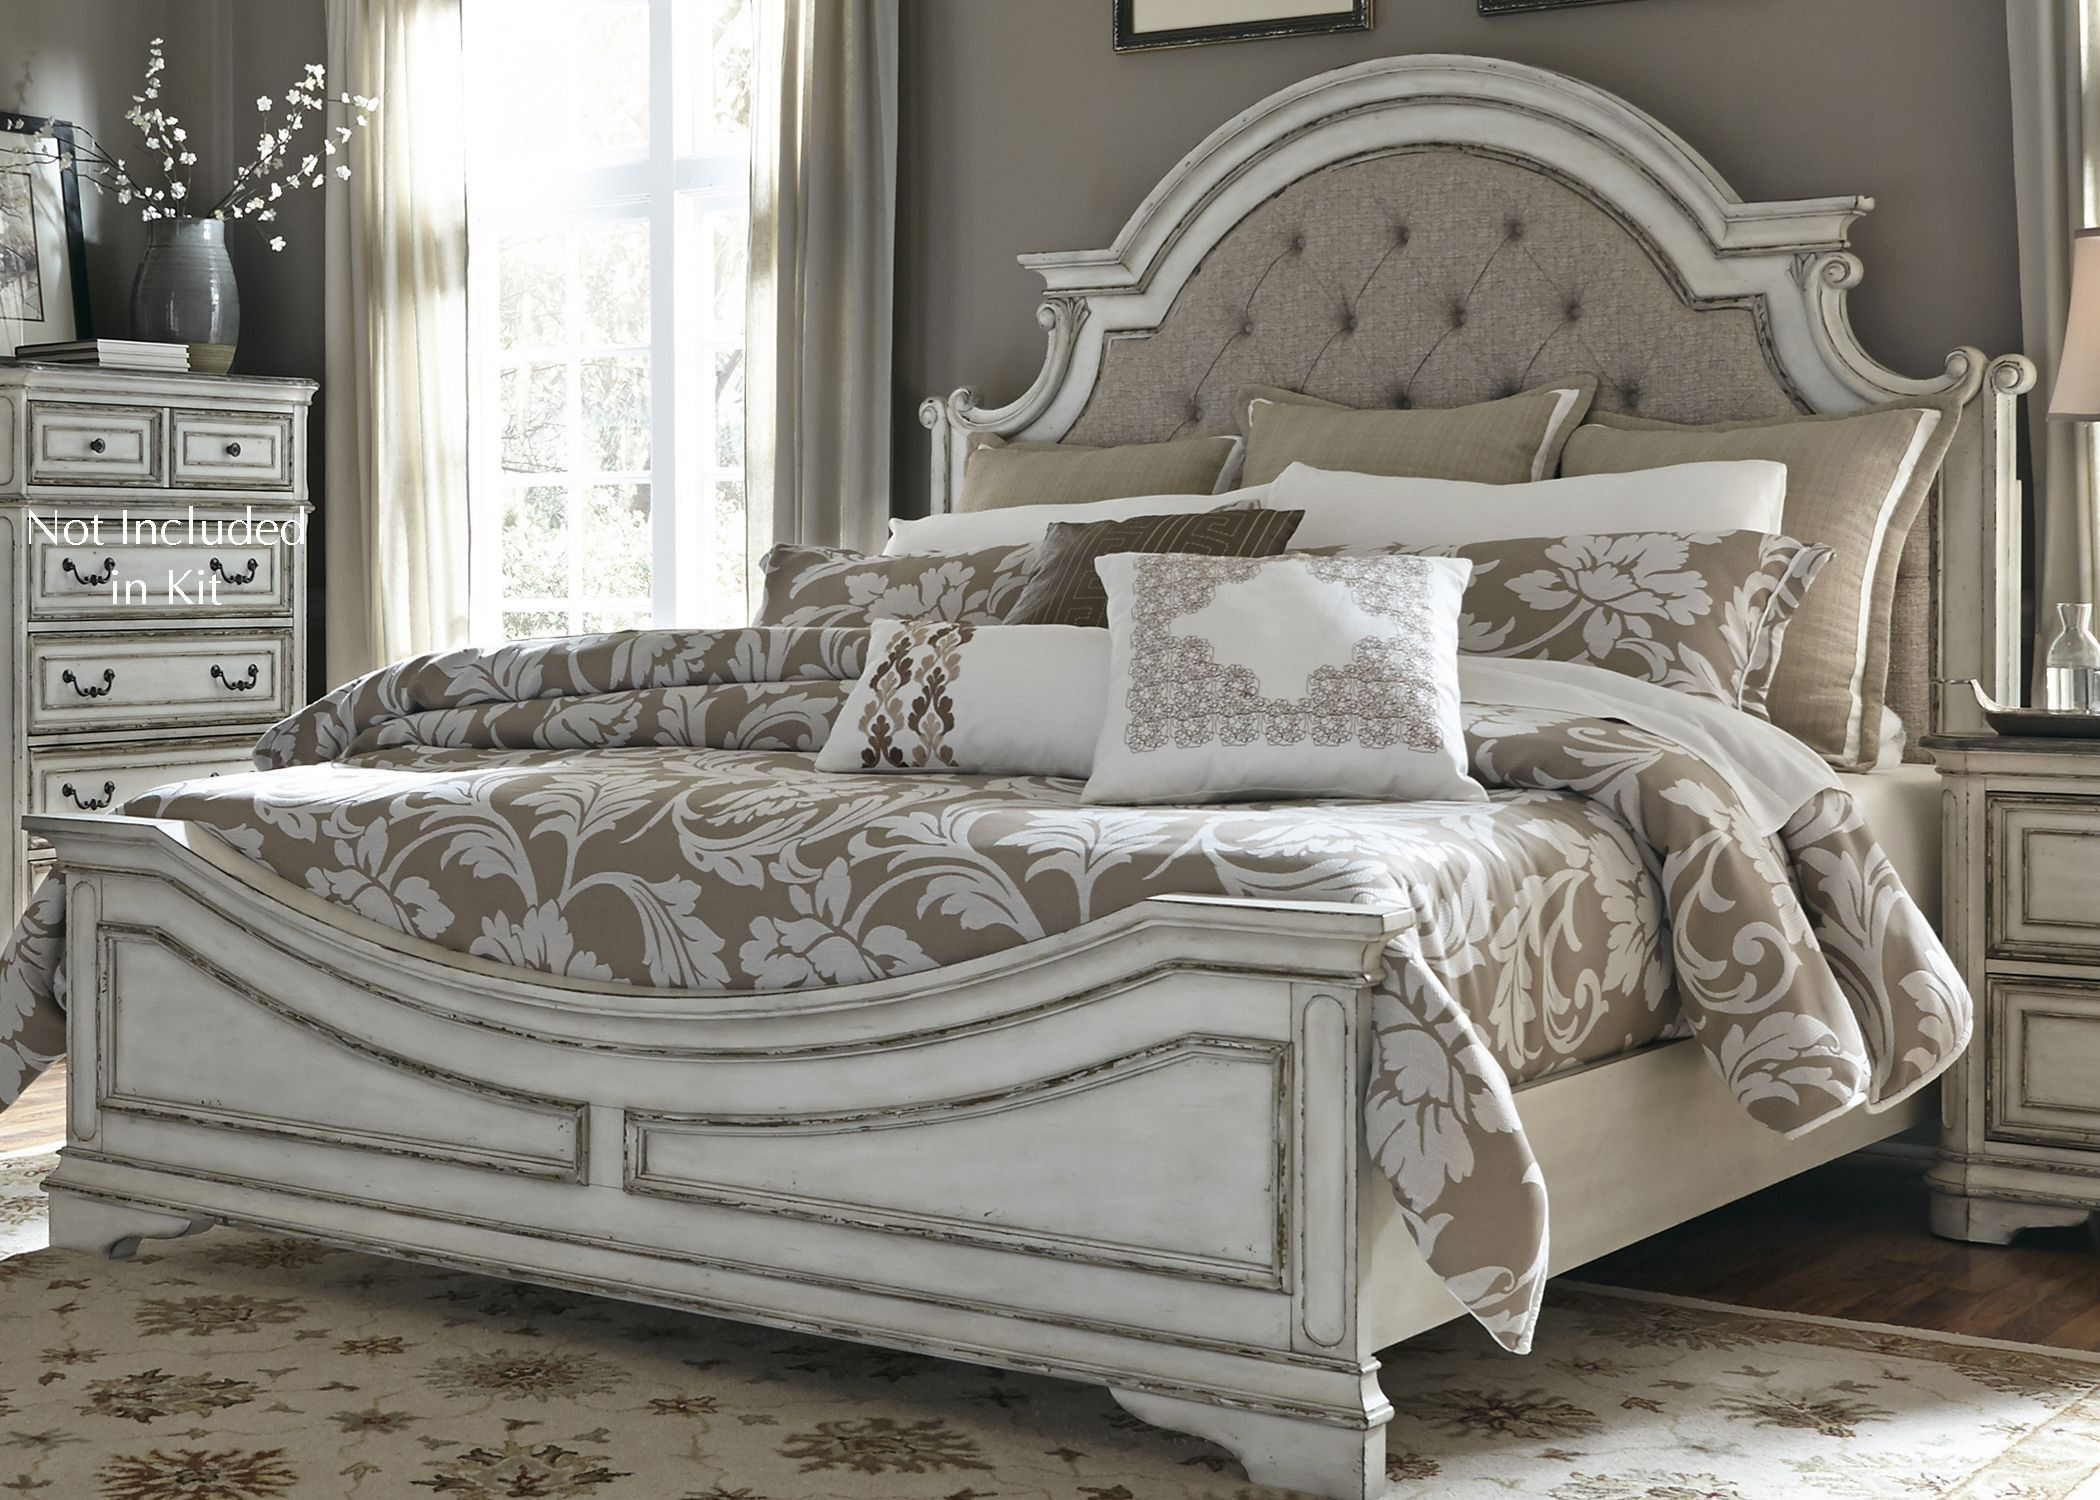 Magnolia Manor Antique White Upholstered Panel Bedroom Set | Home ...